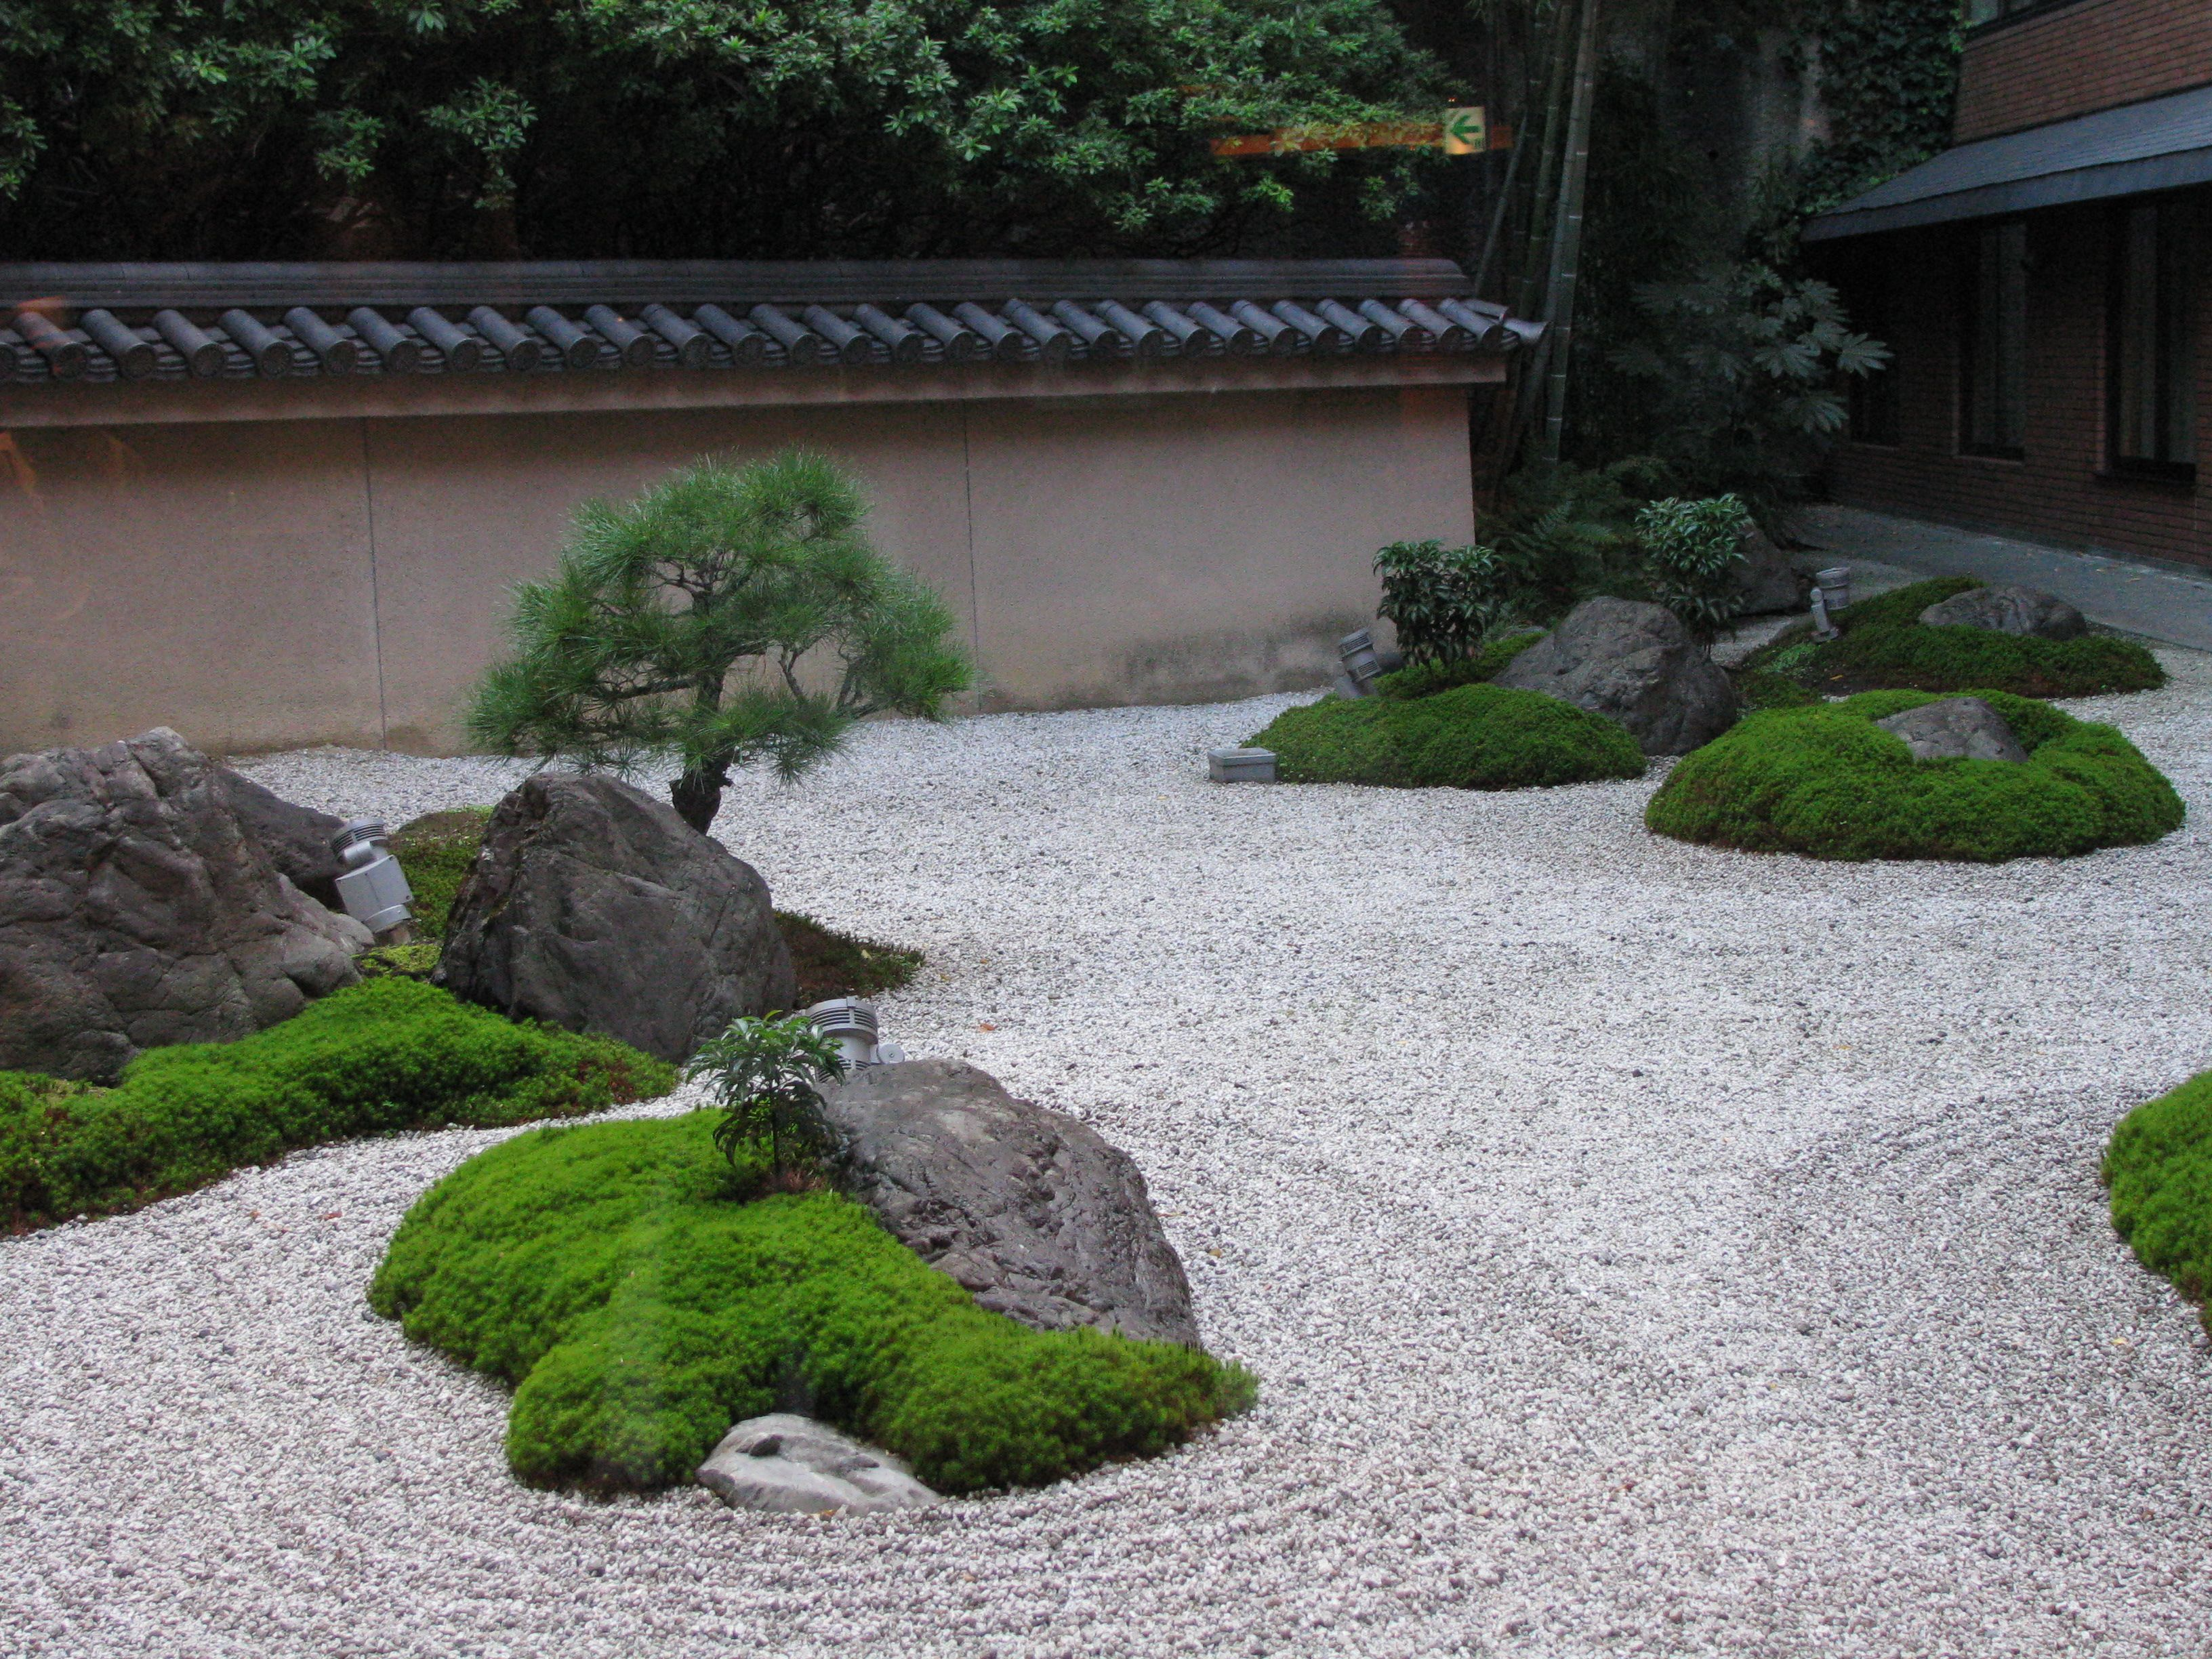 Buddhist Ceremony Traditional Japanese Garden: Japanese Garden Examples - Google Search